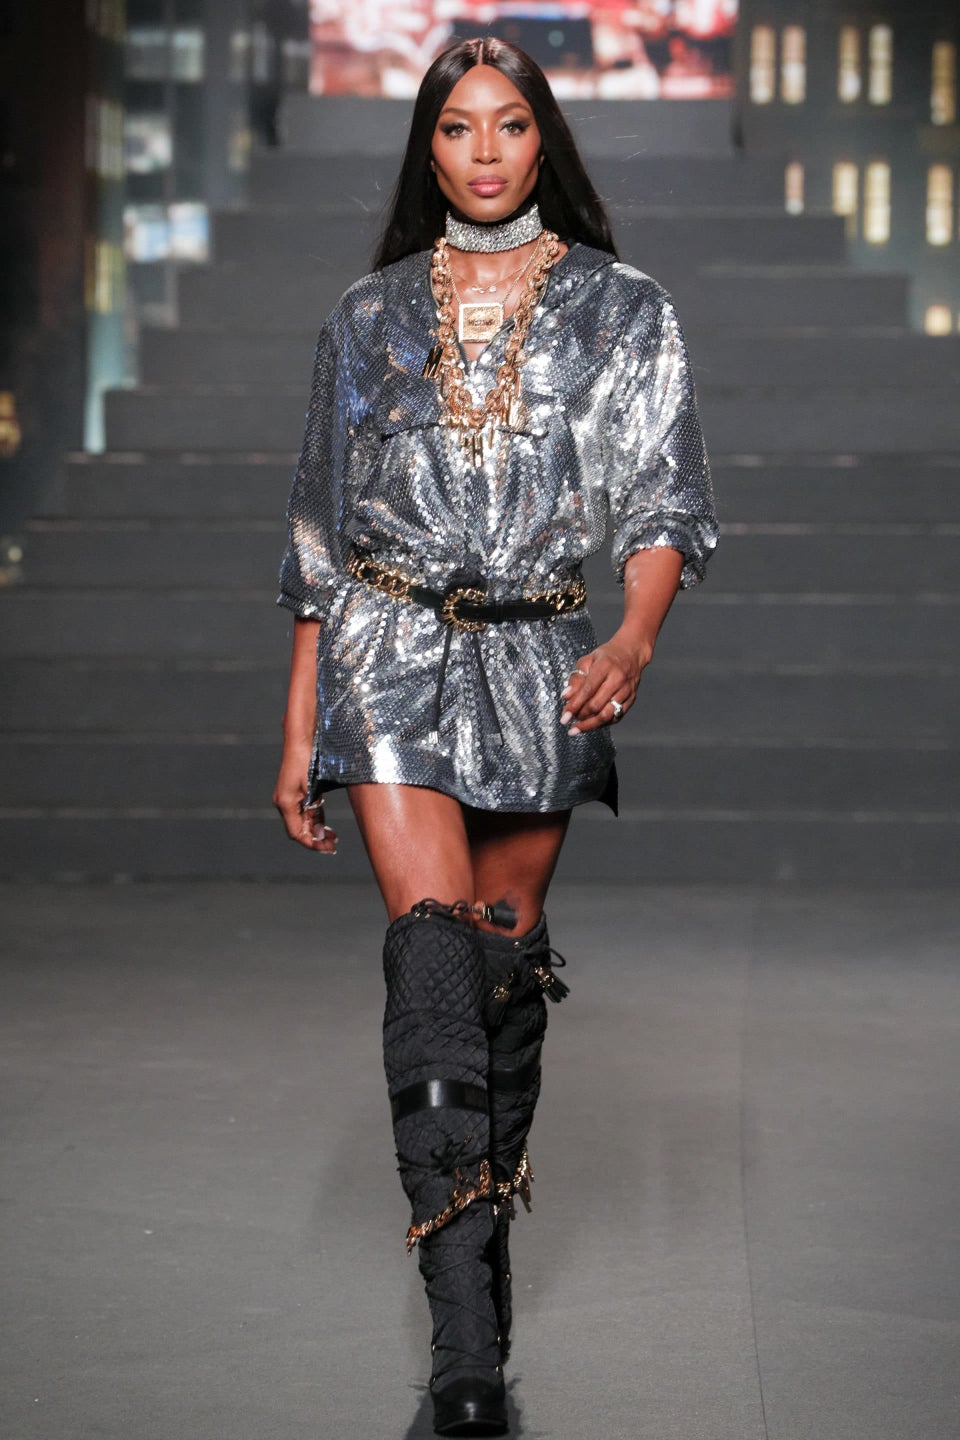 Naomi Campbell Shut Down The Runway With A Surprise Appearance At The Moschino x H&M Fashion Presentation